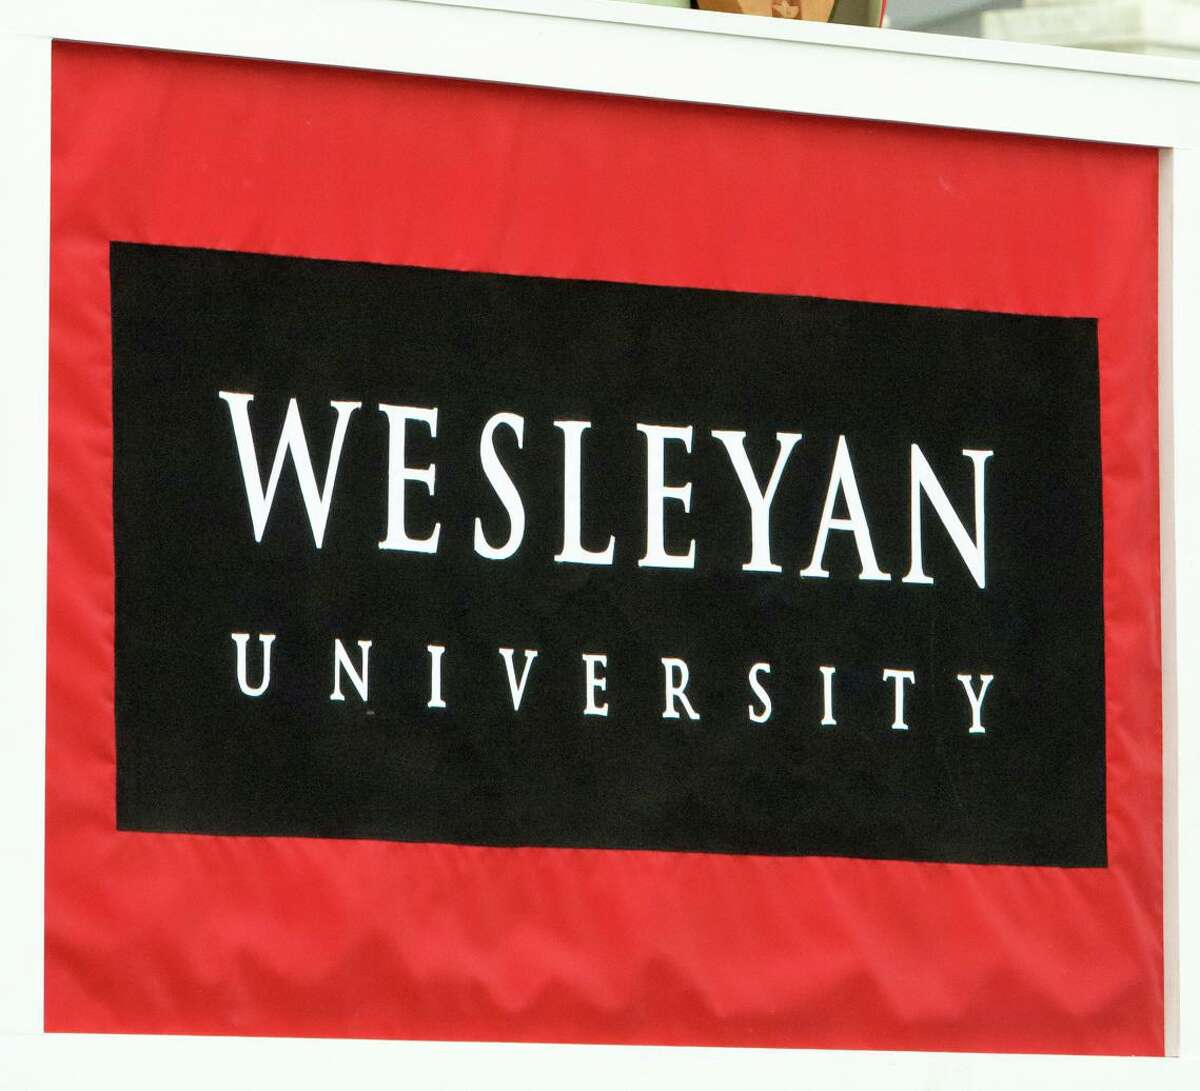 Wesleyan University is in Middletown.